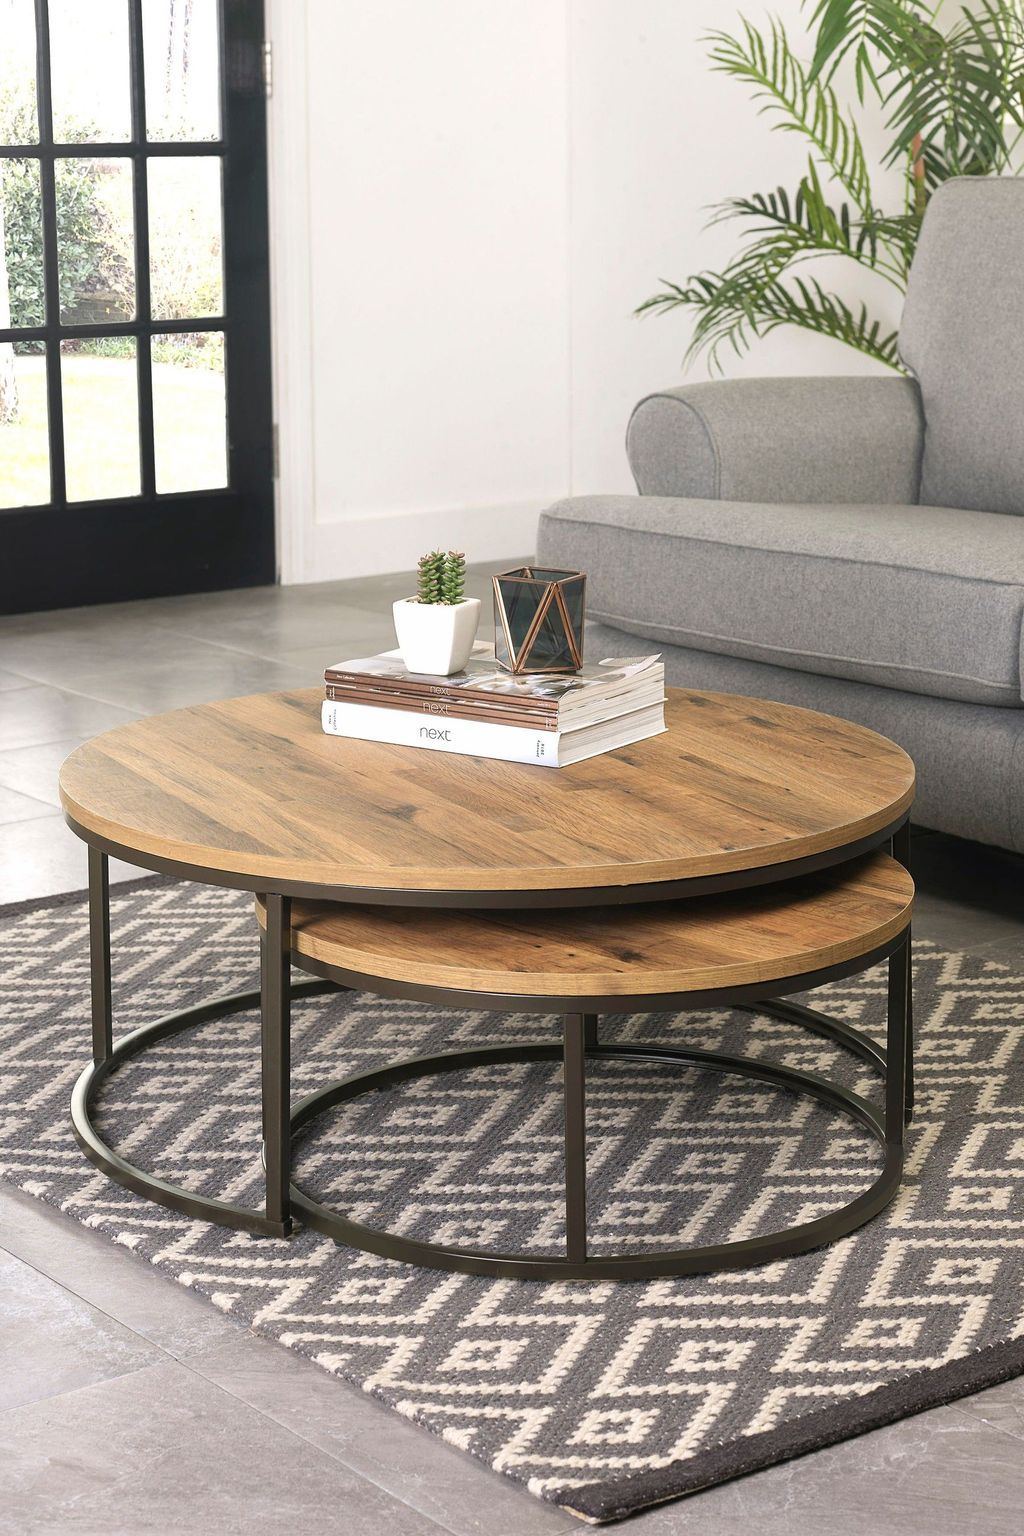 34 The Best Modern Coffee Tables Design Ideas Modern Coffee Table Decor Coffee Table Beautiful Dining Rooms [ 1536 x 1024 Pixel ]